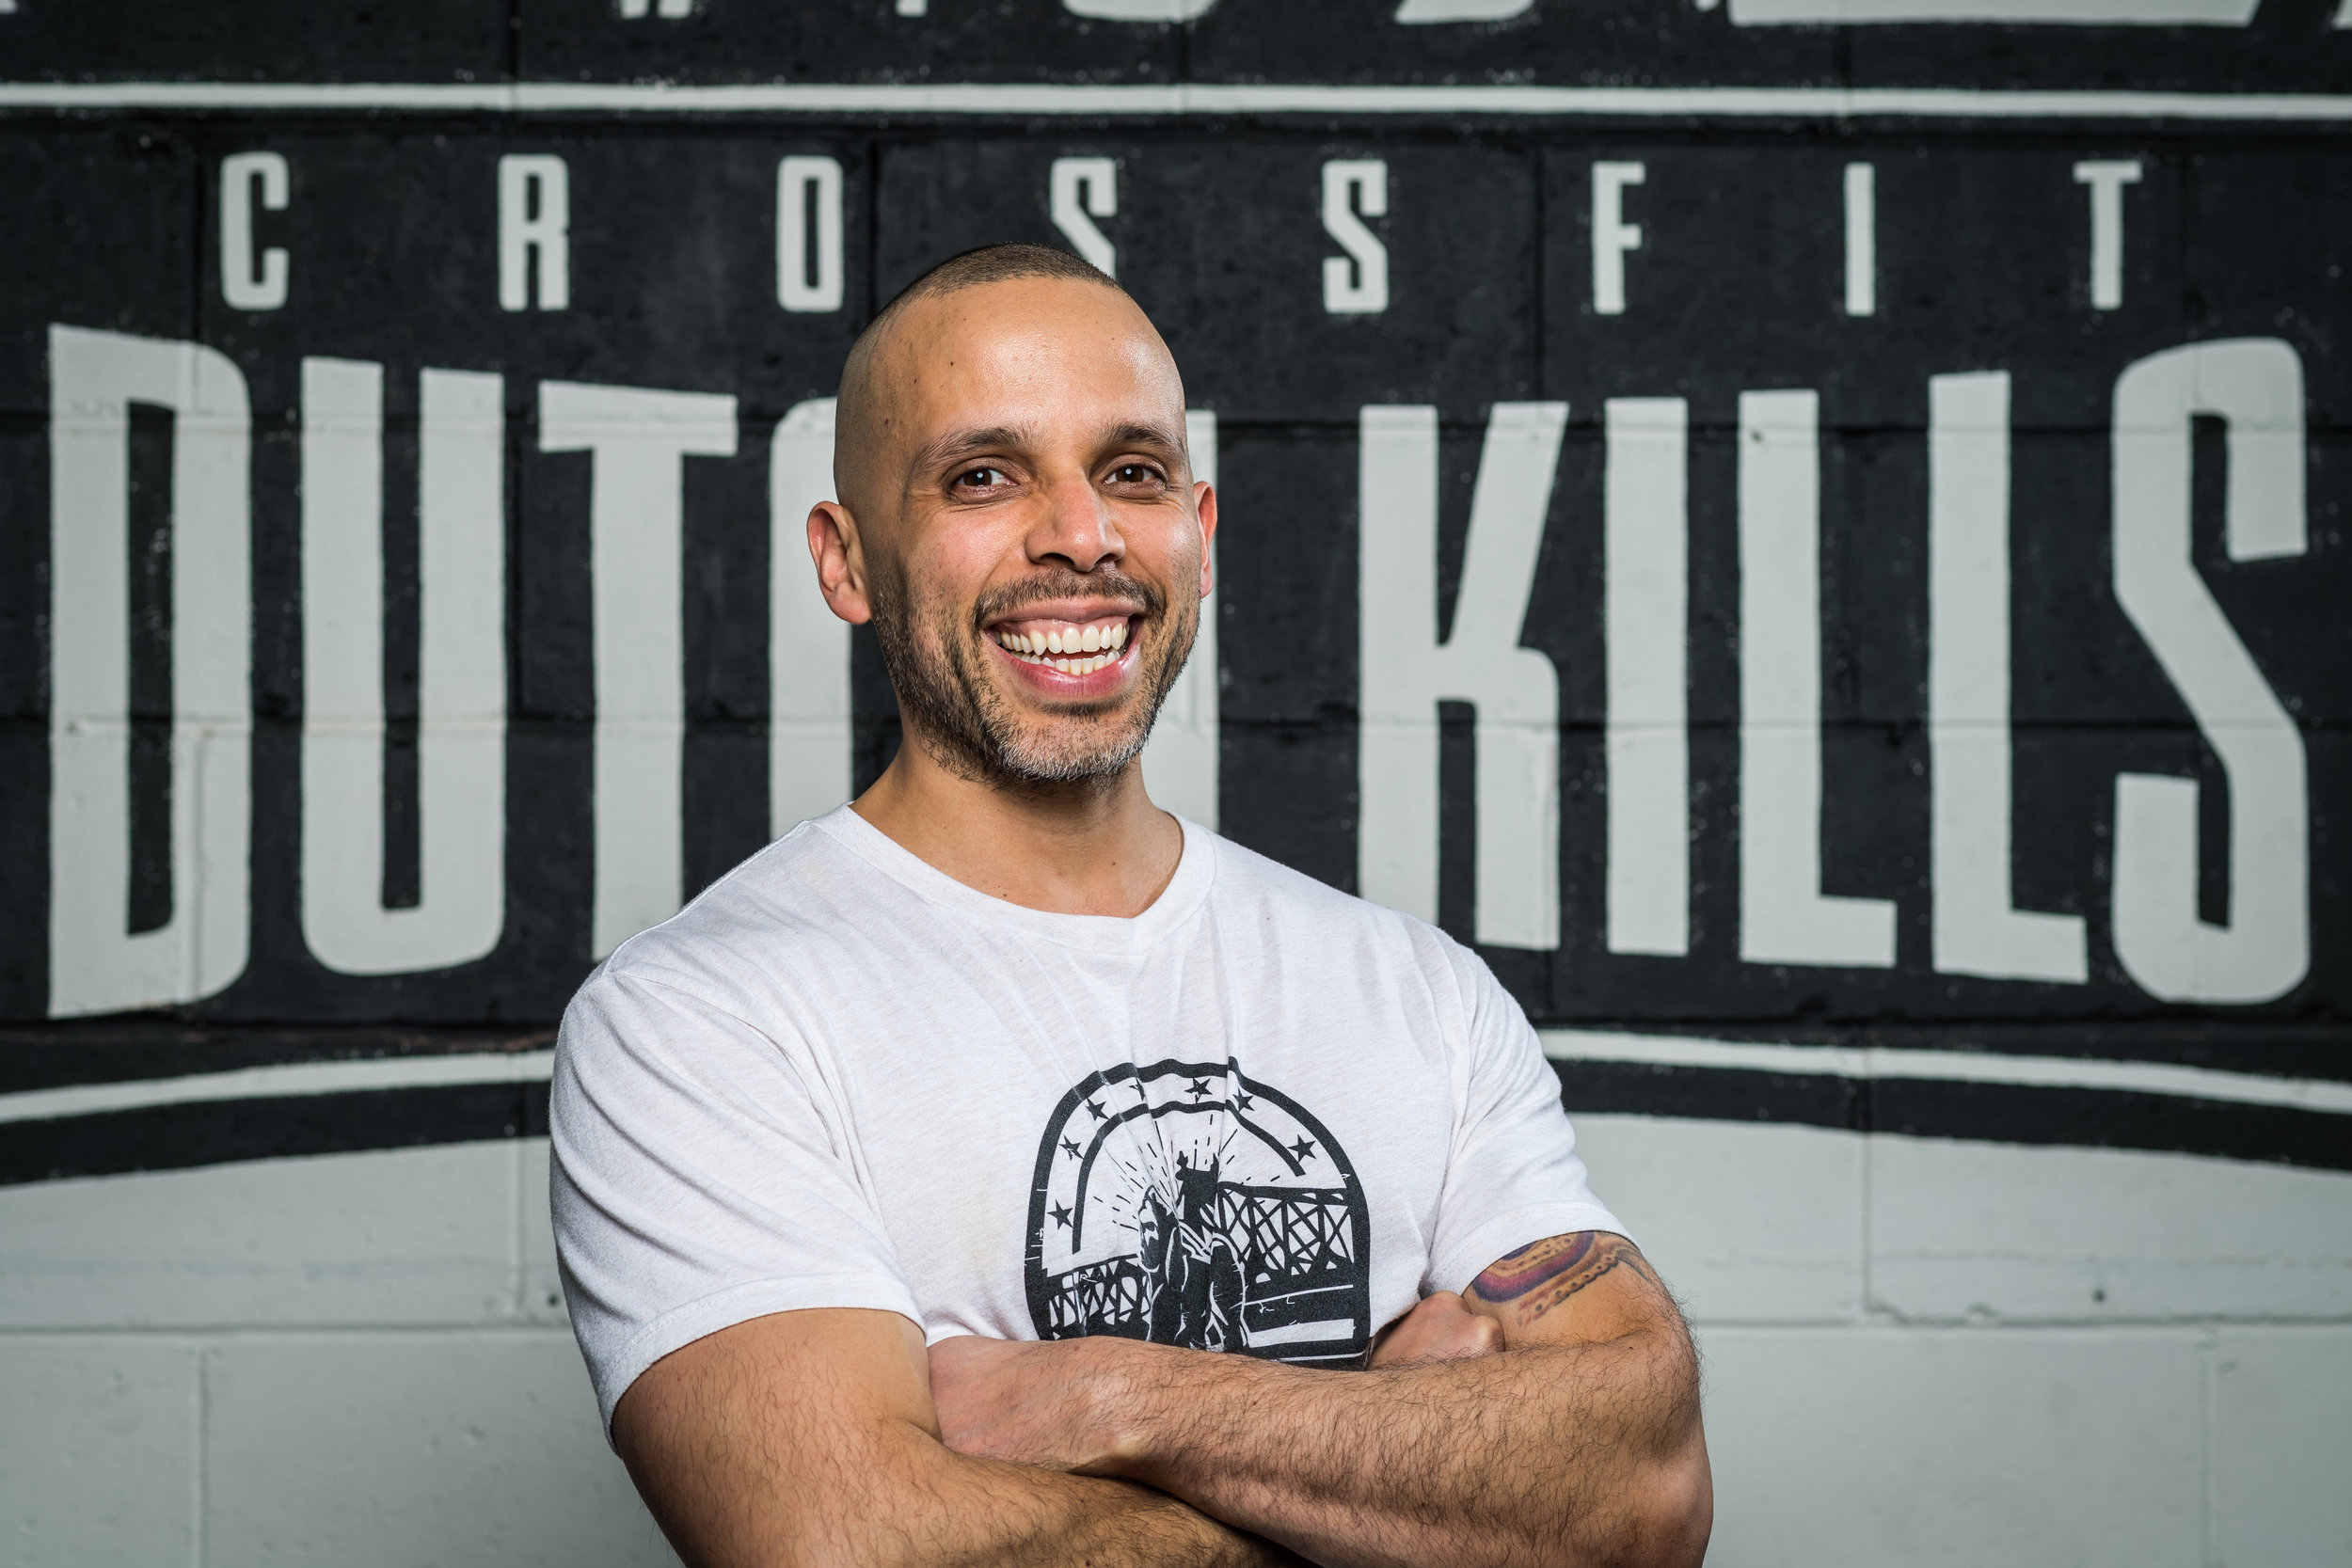 JOSE GAMERO   Hometown: Cedarhurst, New York (aka the Hurst)  CrossFit Level 2 CrossFit Strongman CrossFit Scaling CrossFit Spot-the-Flaw  CrossFitting since 2014 Favorite Movement: Anything with a Stone Least Favorite Movement: Snatch